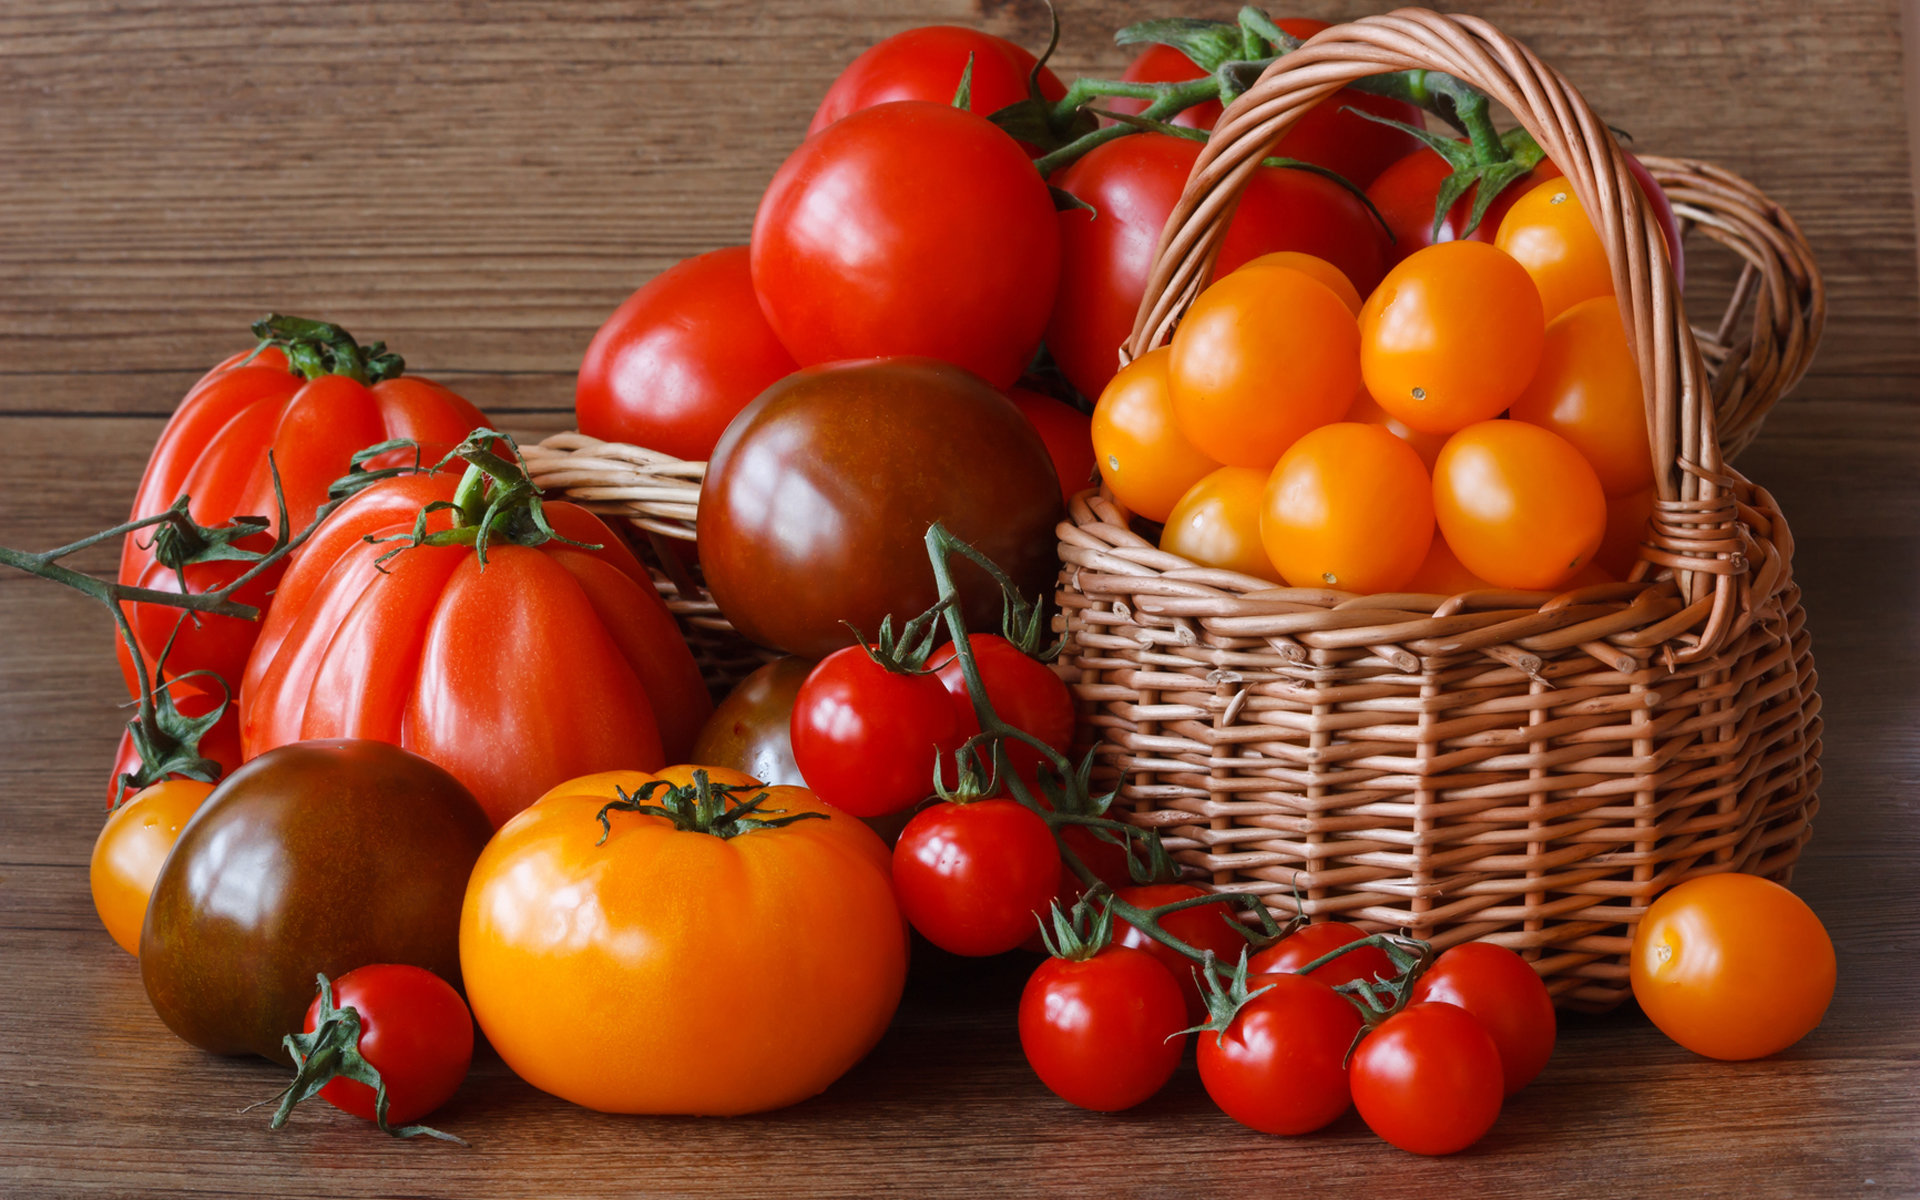 Free Tomato high quality wallpaper ID:95385 for hd 1920x1200 computer